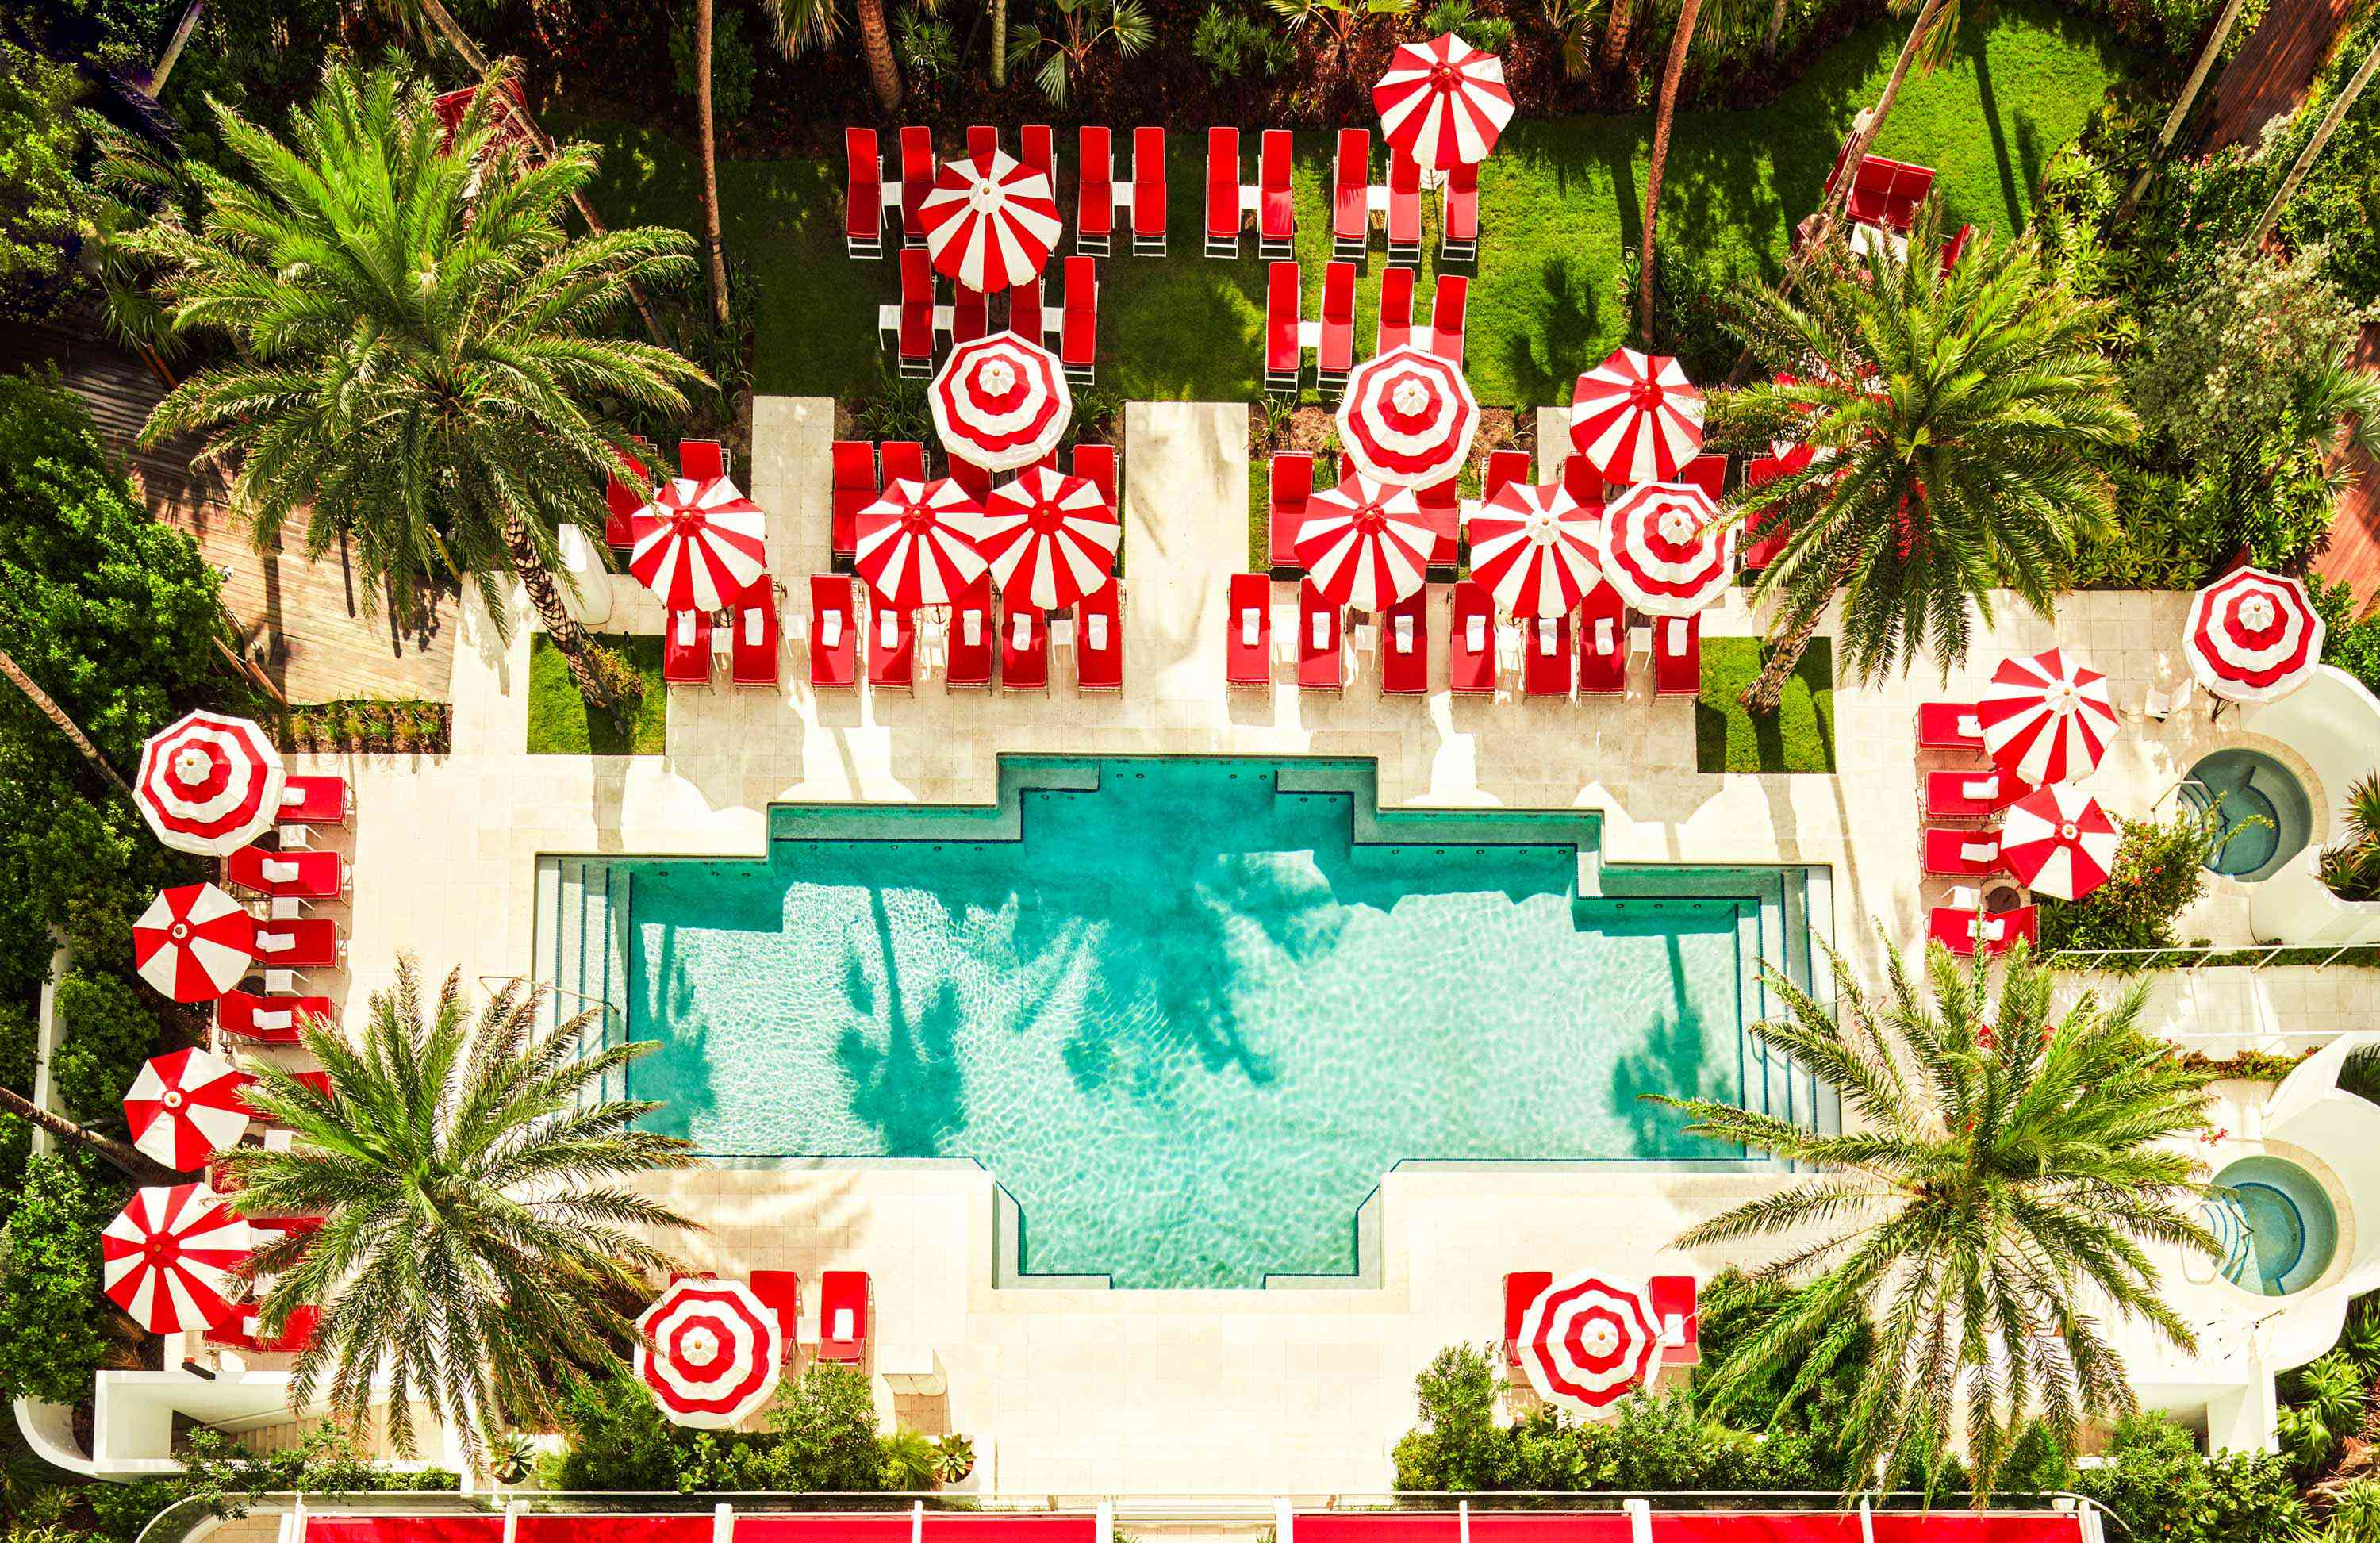 Aerial view of an outdoor pool with red lounge chairs and red and white umbrellas with varying patterns